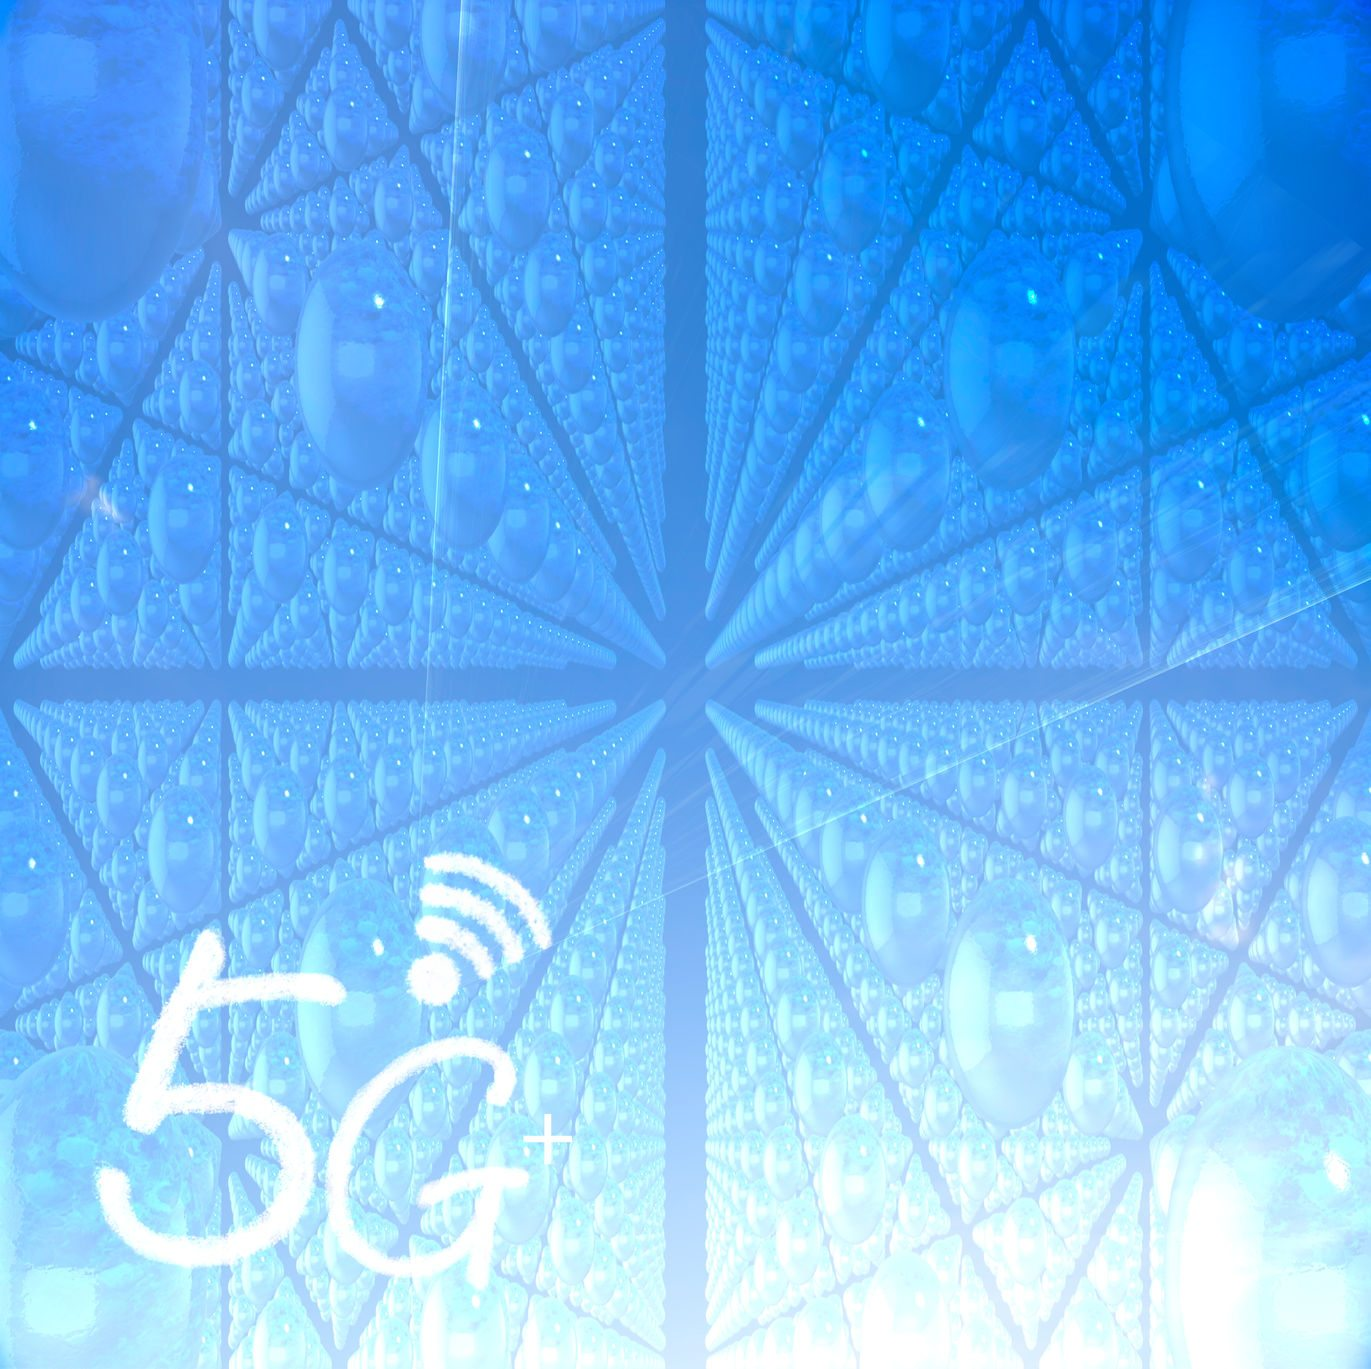 5G fixed wireless access use case brings new set of testing challenges